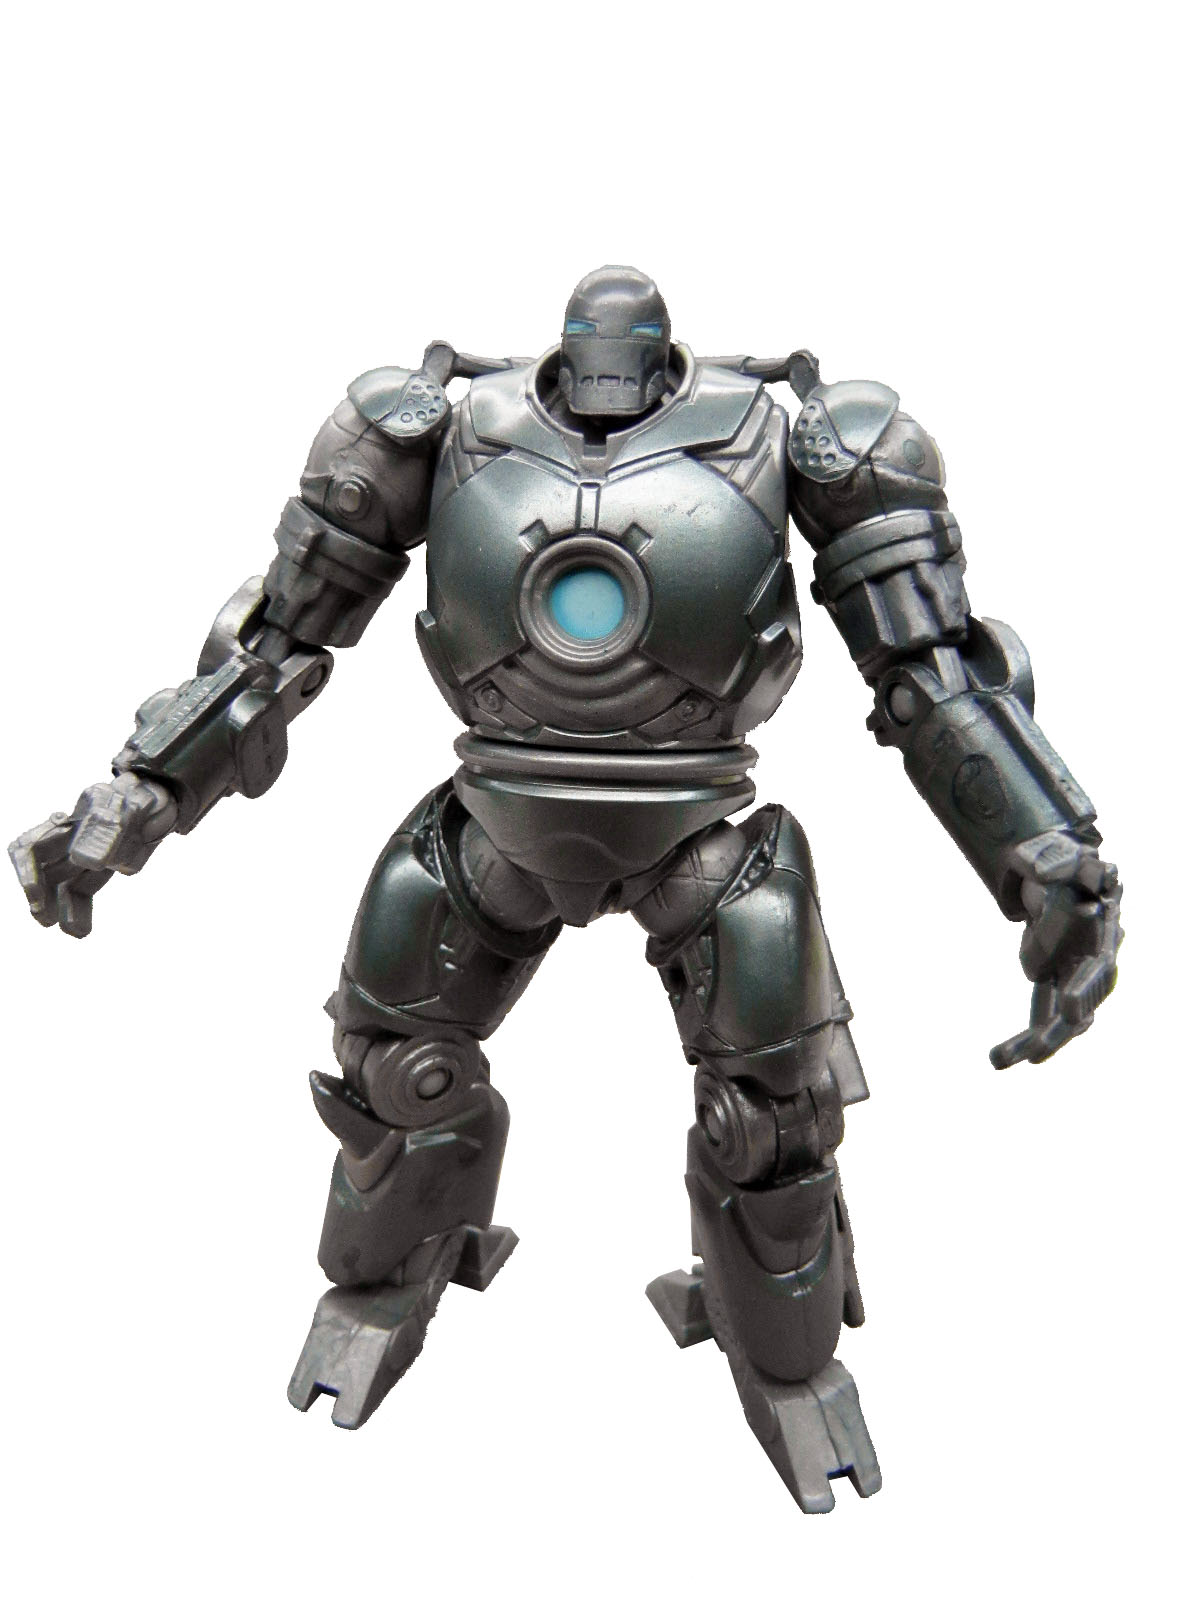 Marvel Iron Man 2 Movie Series Iron Monger Complete